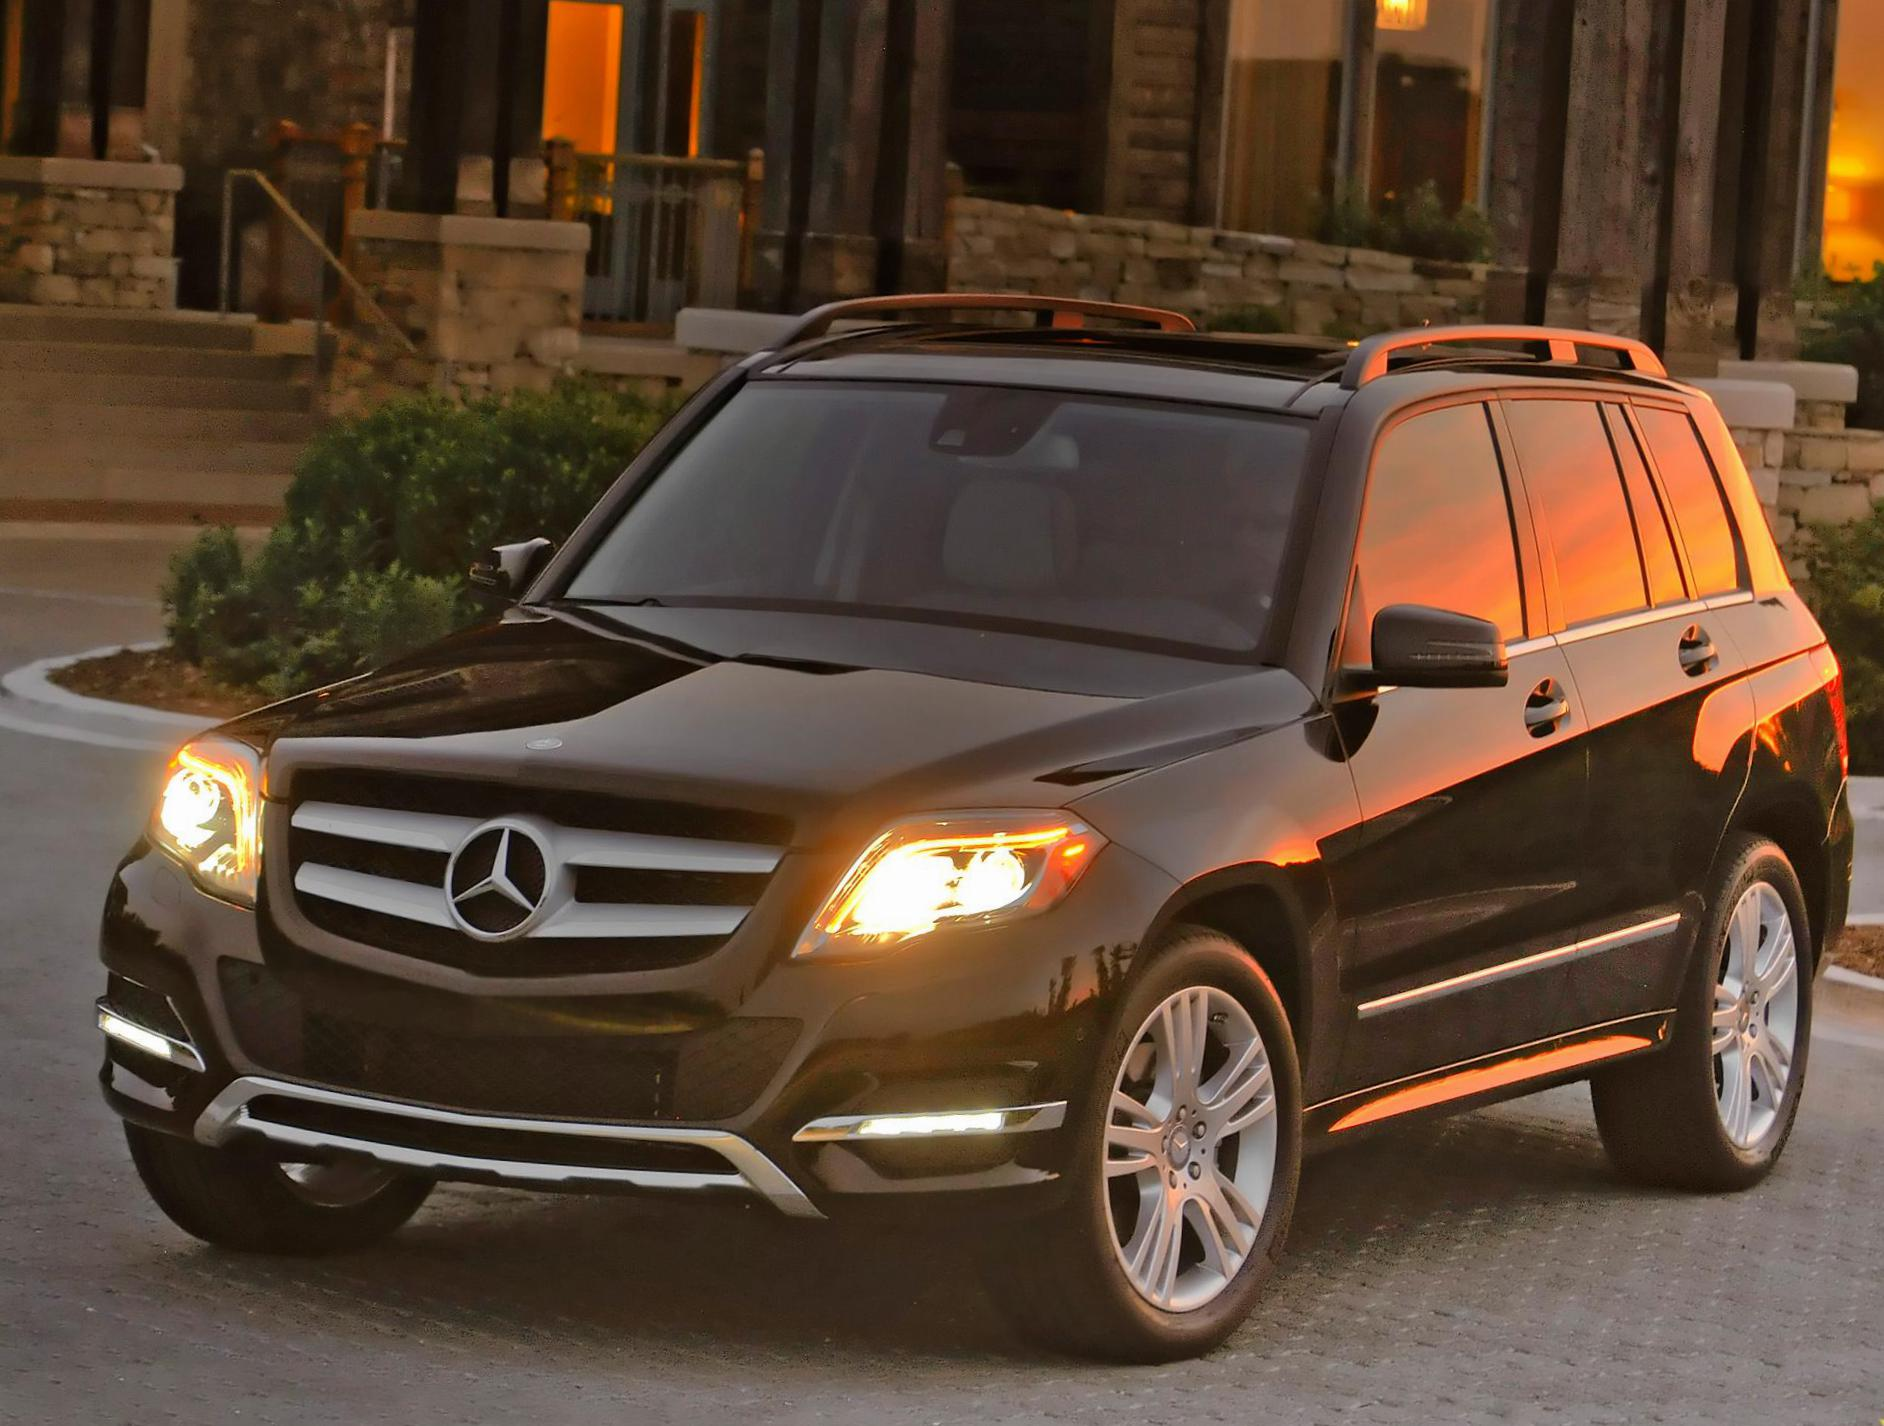 GLK-Class (X204) Mercedes for sale 2008